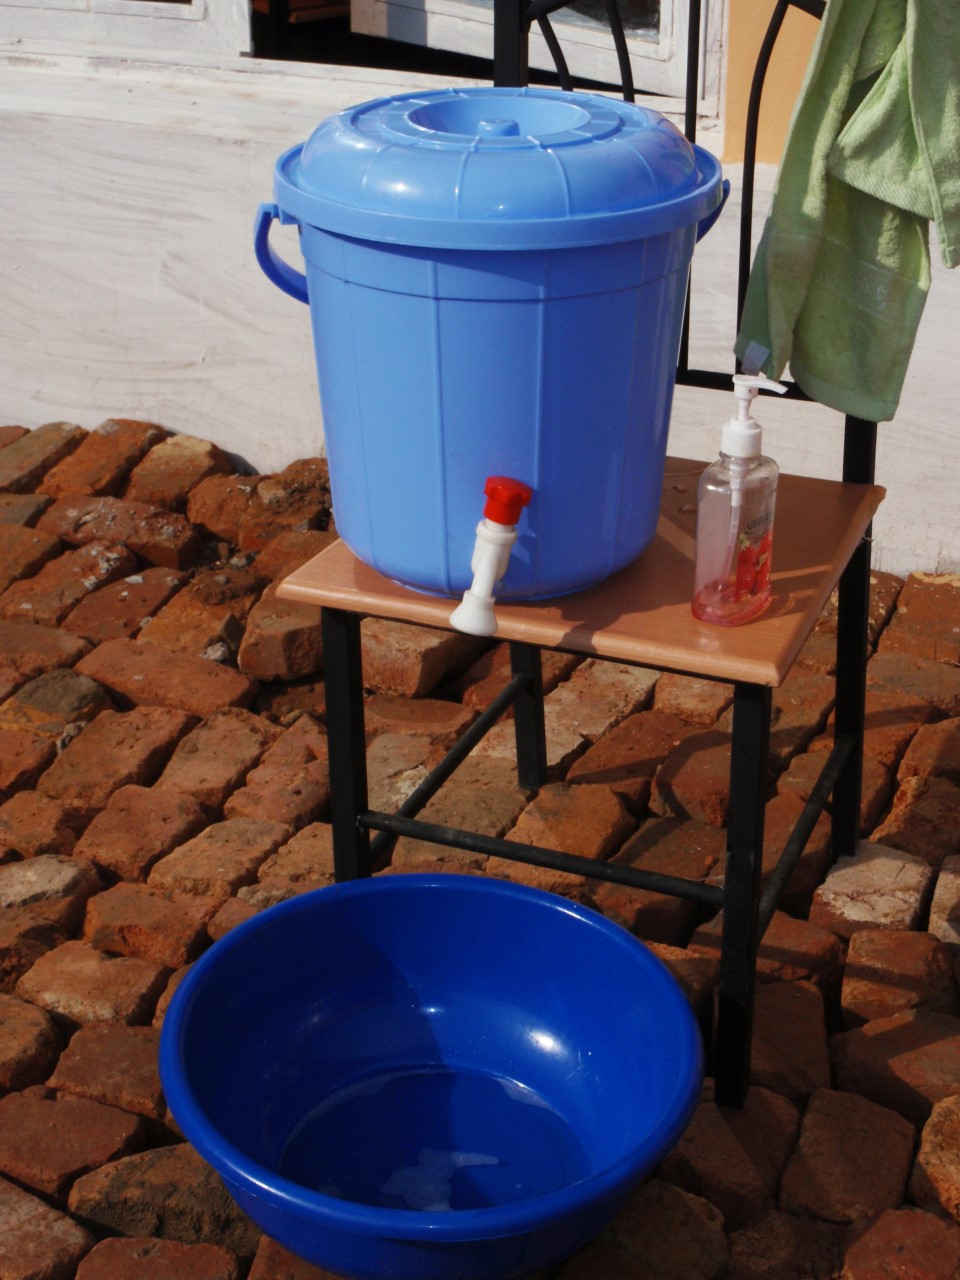 A typical hand-washing station